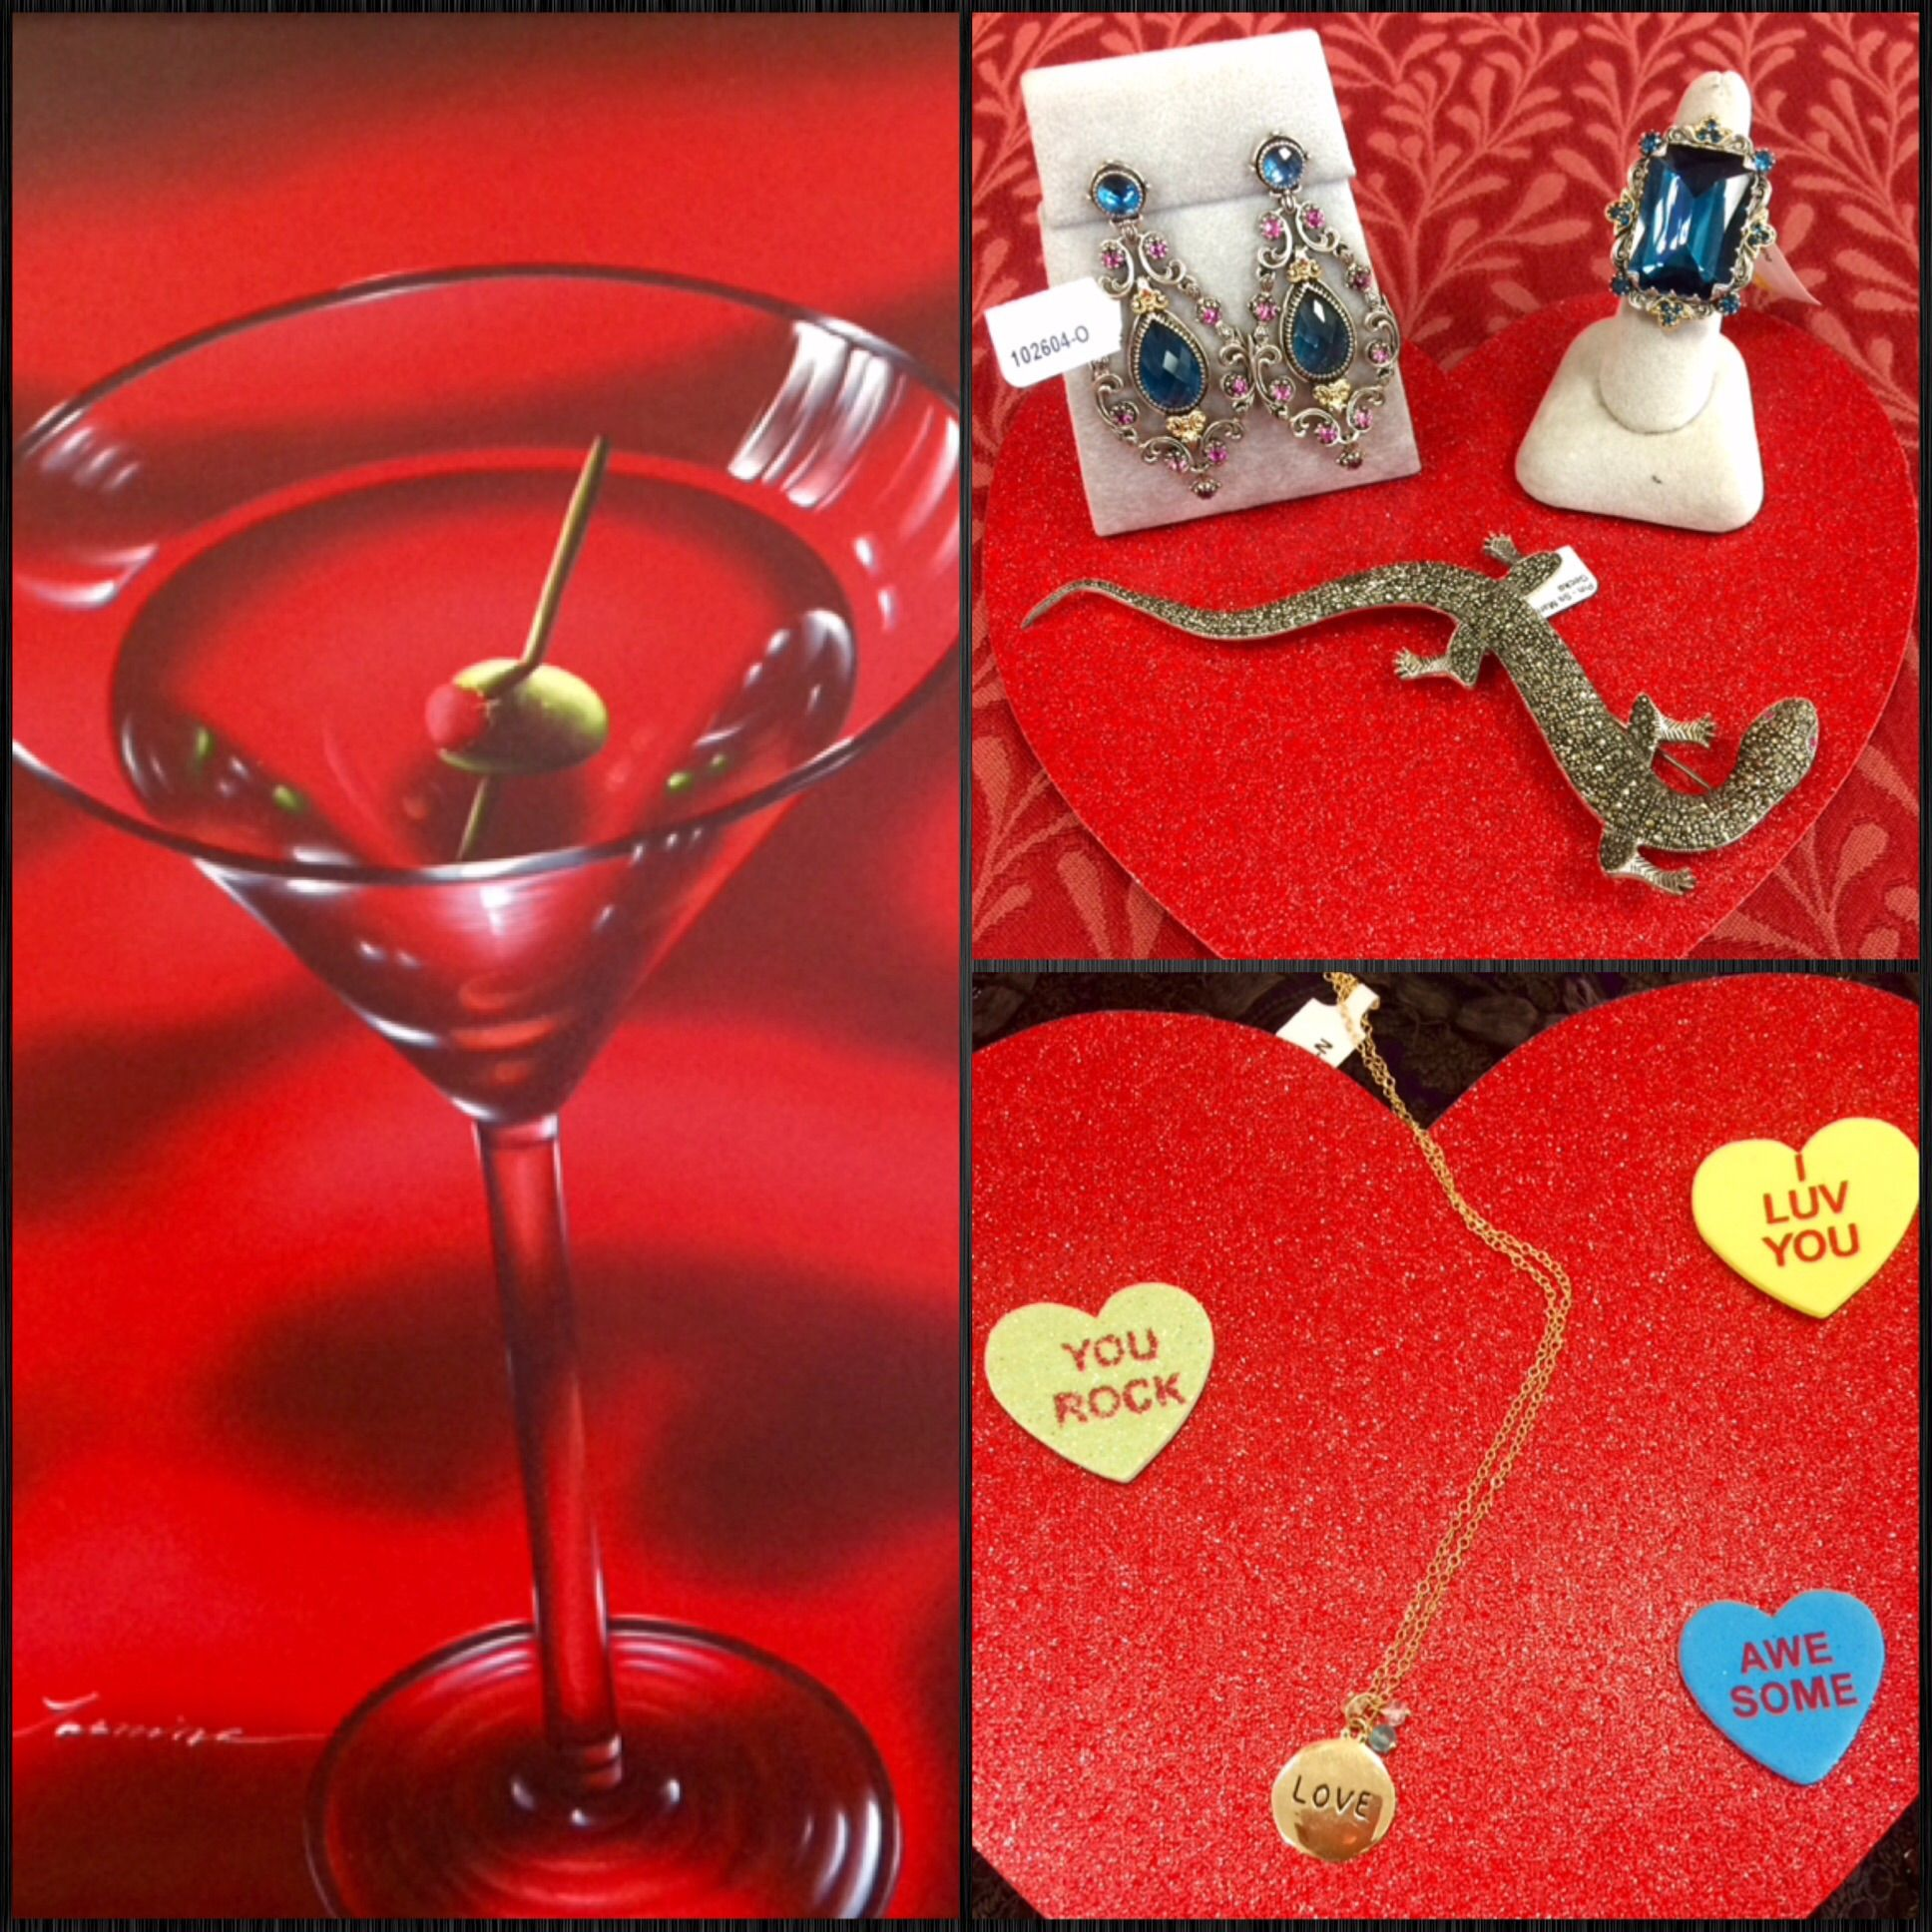 Roses Are Red Violets Are Blue Treat Your Sweetie To Something Glamorous From Our Jewelery Counter Alcoholic Drinks Glassware Martini Glass